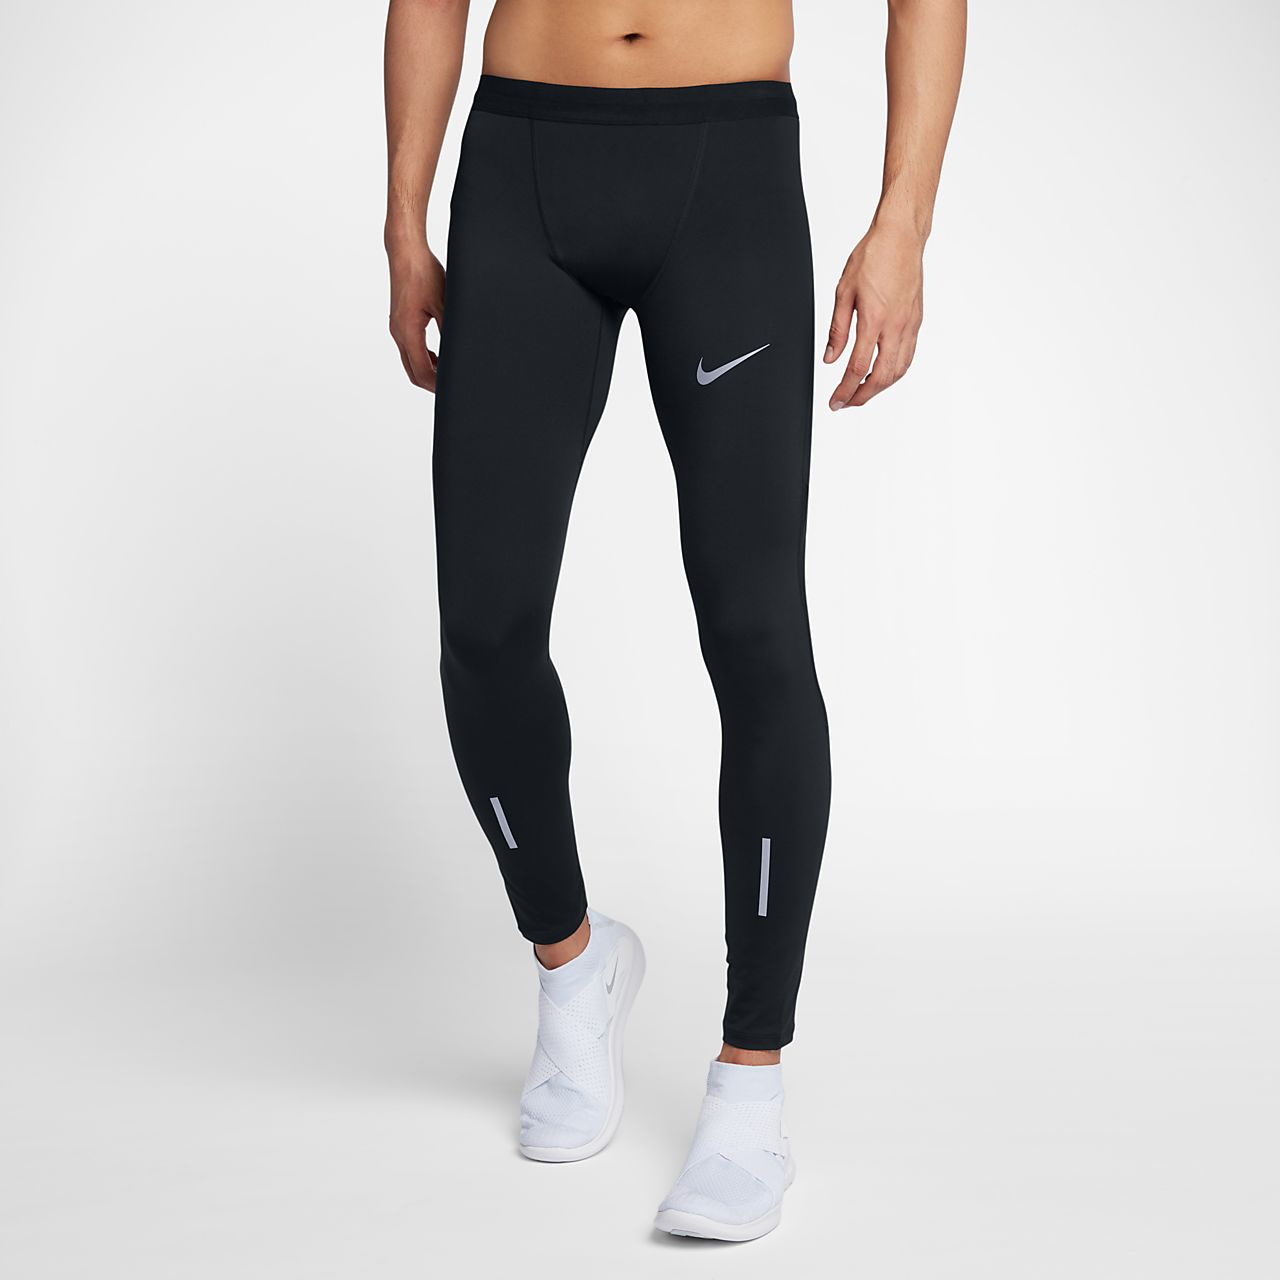 Nike running tights mens